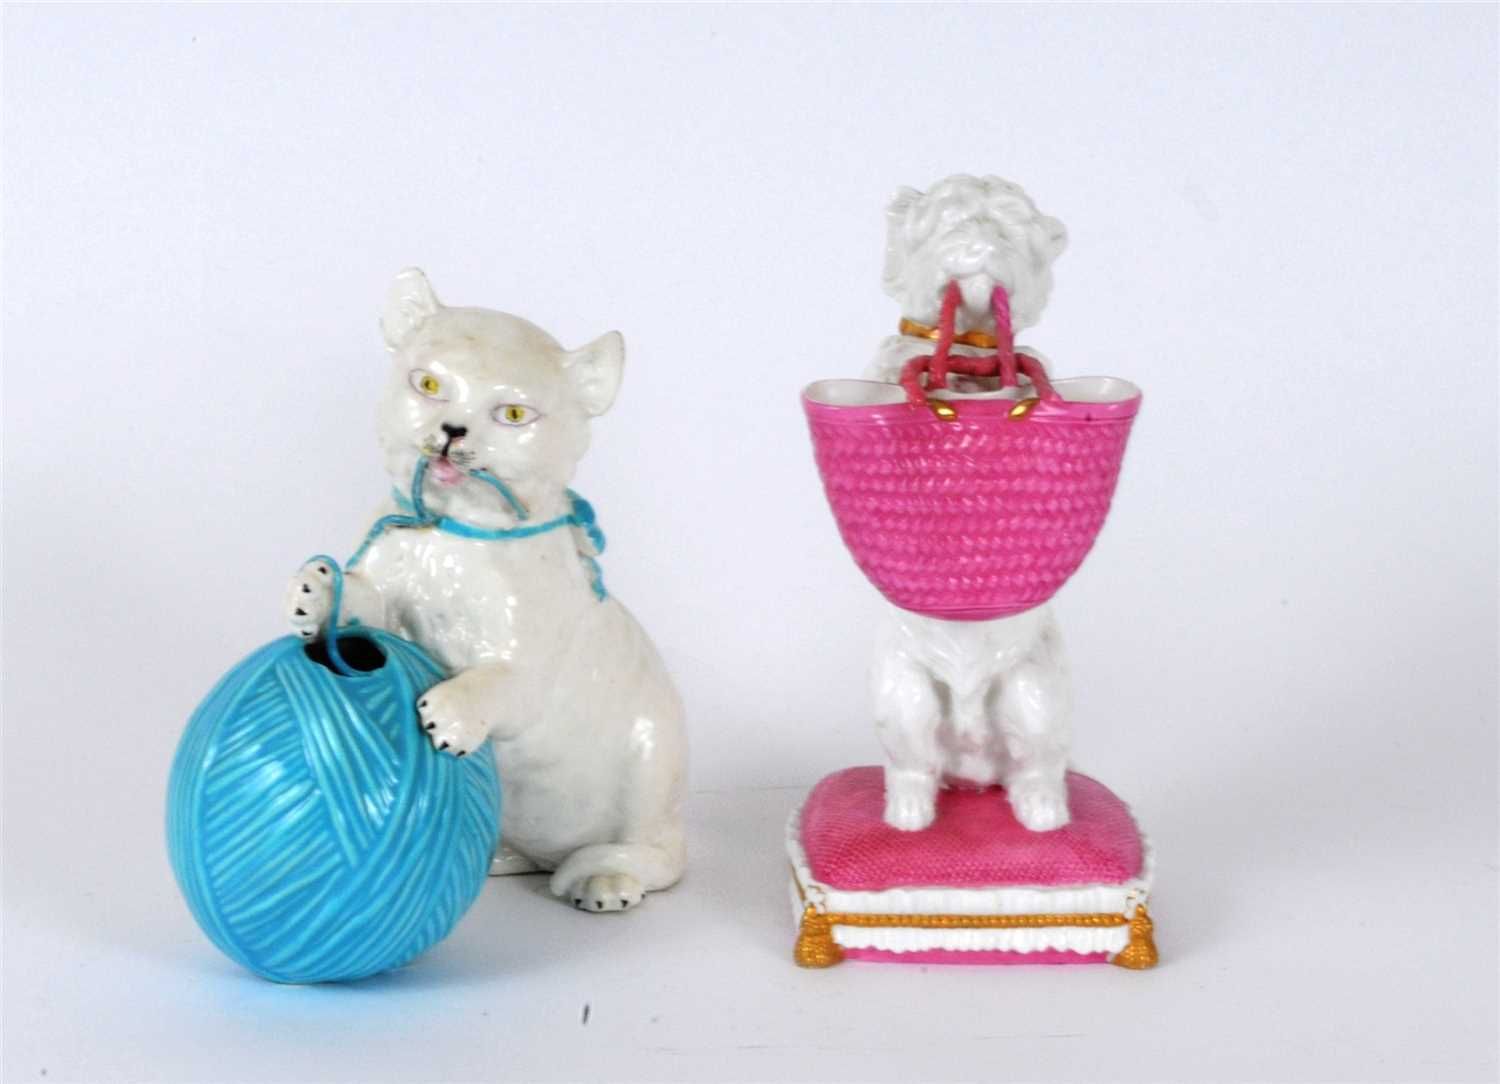 Lot 16-William Brownfield figure of begging dog and similar figure of kitten with yarn